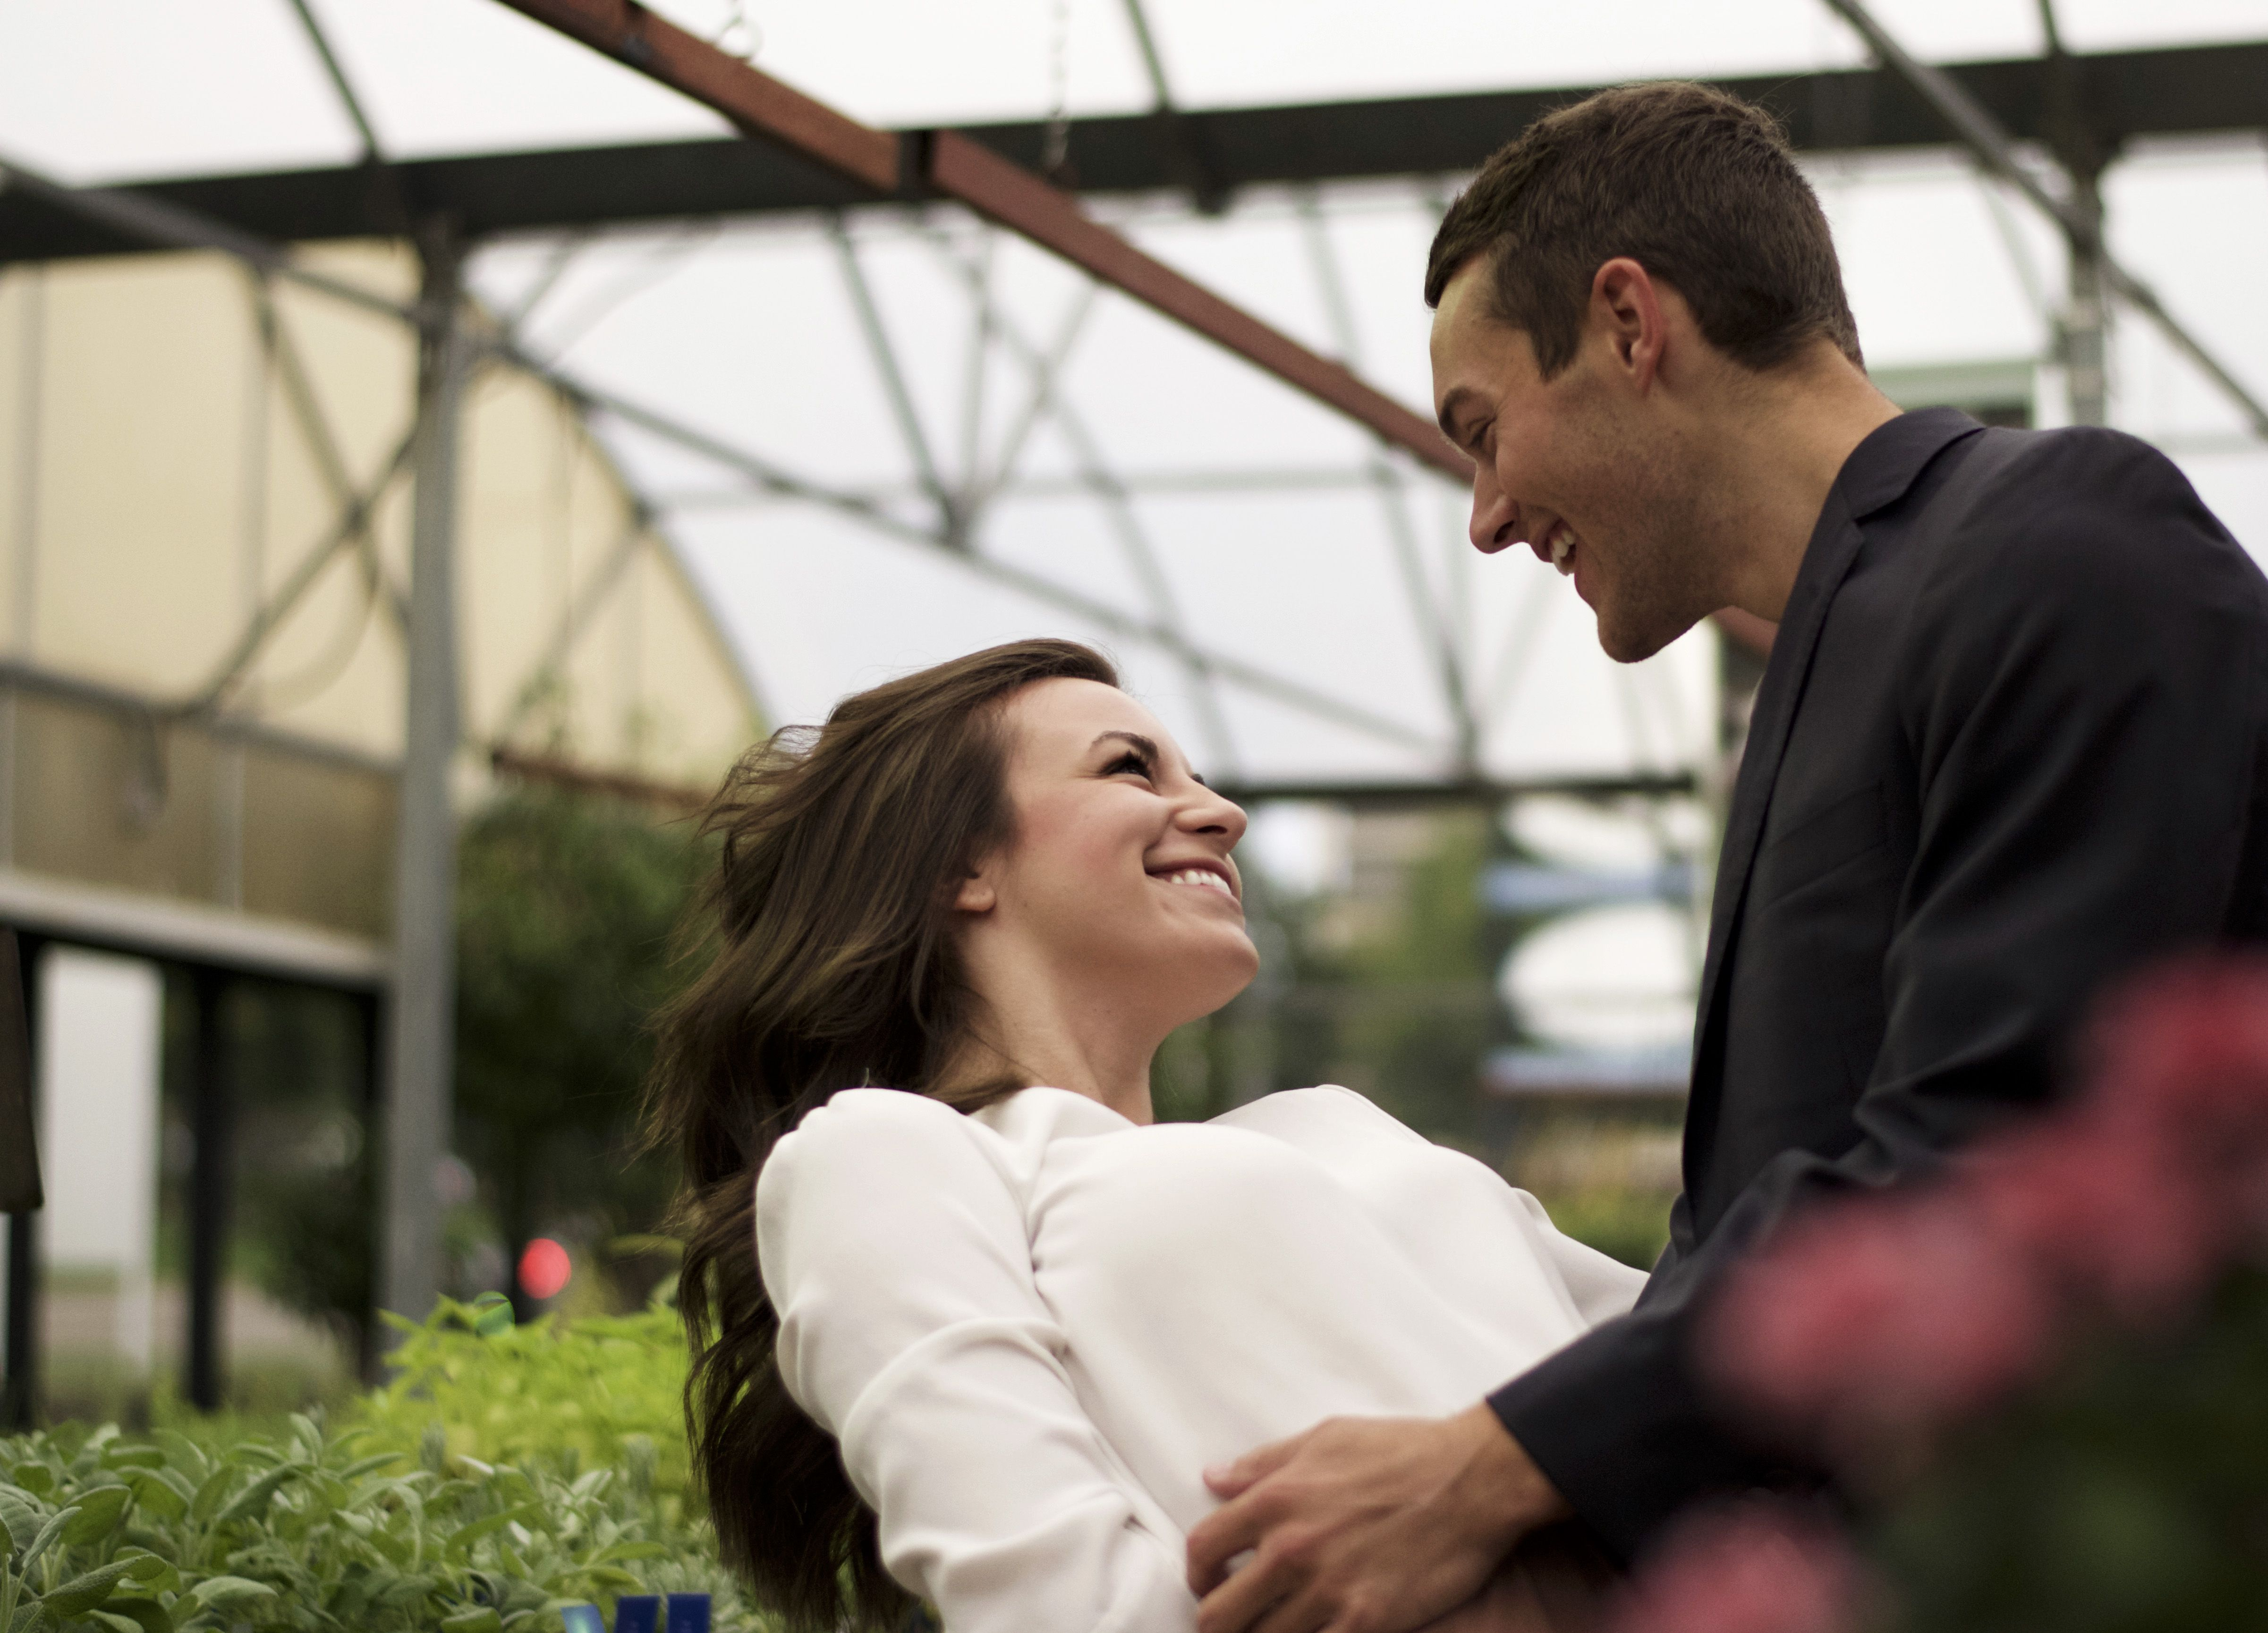 The greenhouse dallas tx - Greenhouse Engagement Photography Dallas Texas Camera Shi Photography